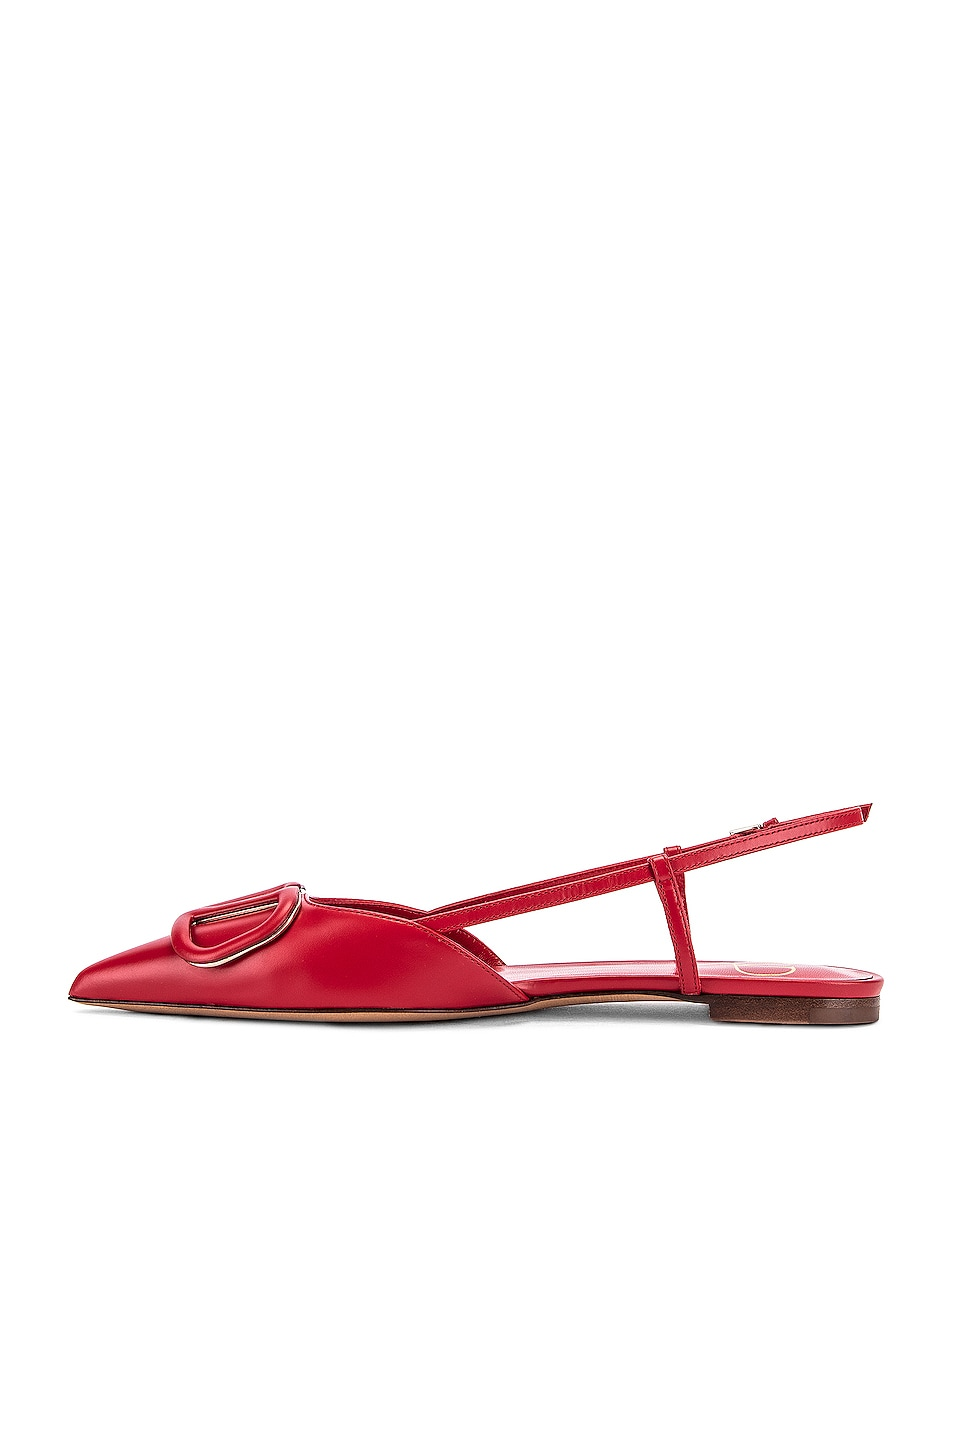 Image 4 of Valentino VLogo Ballerina Flats in Red